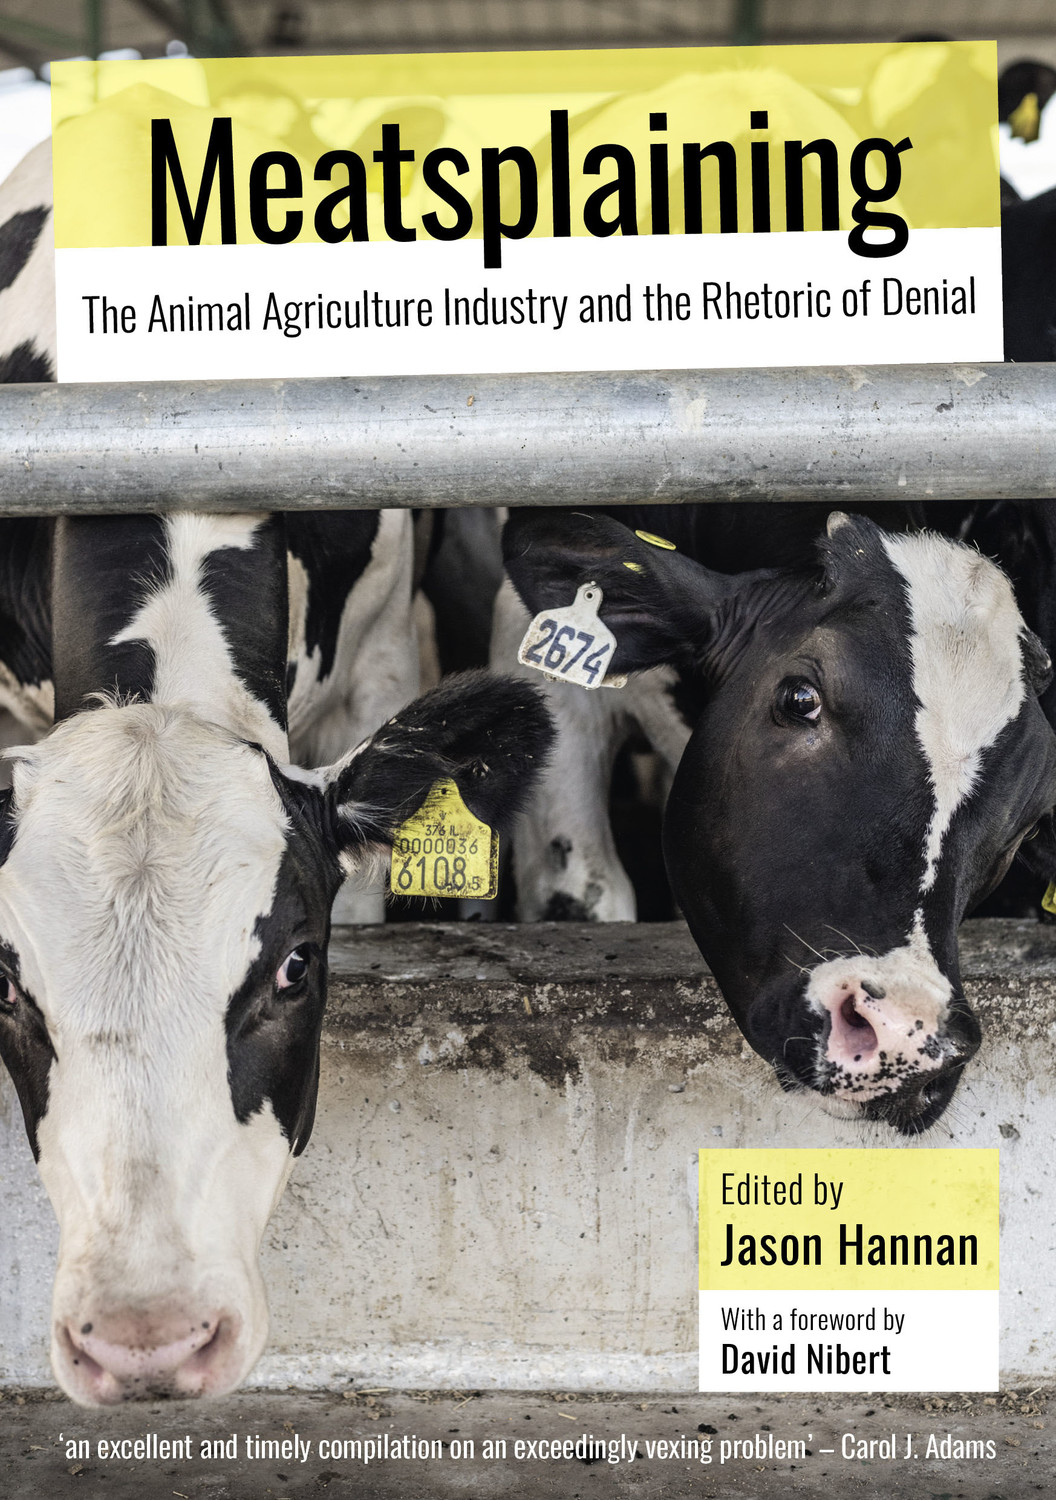 Meatsplaining: The Animal Agriculture Industry and the Rhetoric of Denial